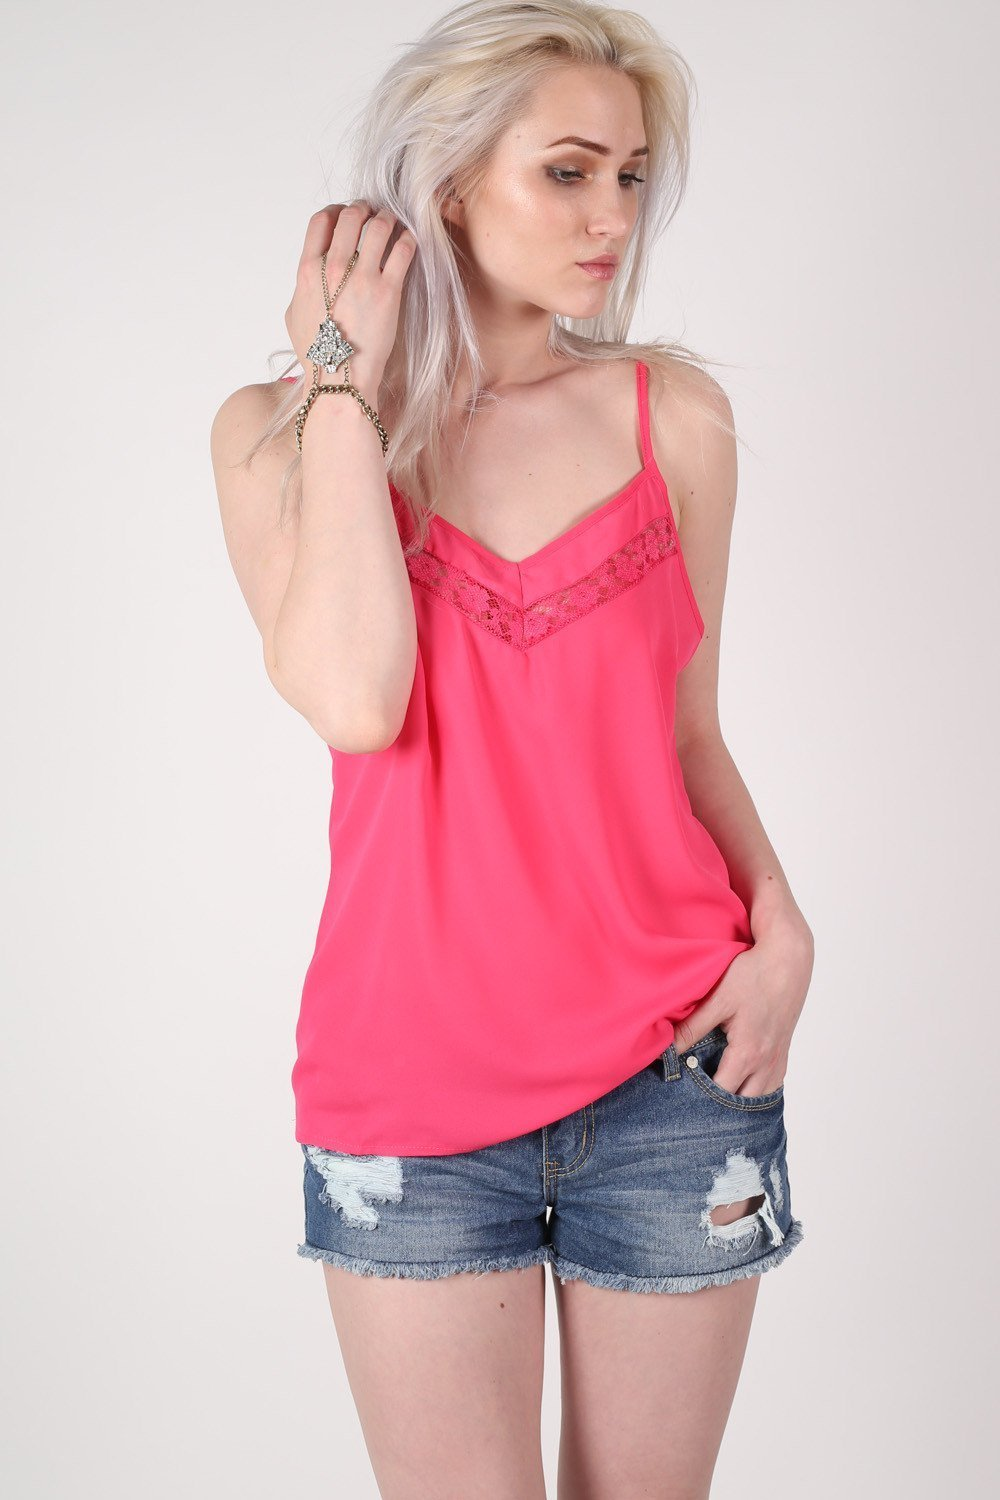 Lace Trim Cami Top in Fuchsia Pink 0